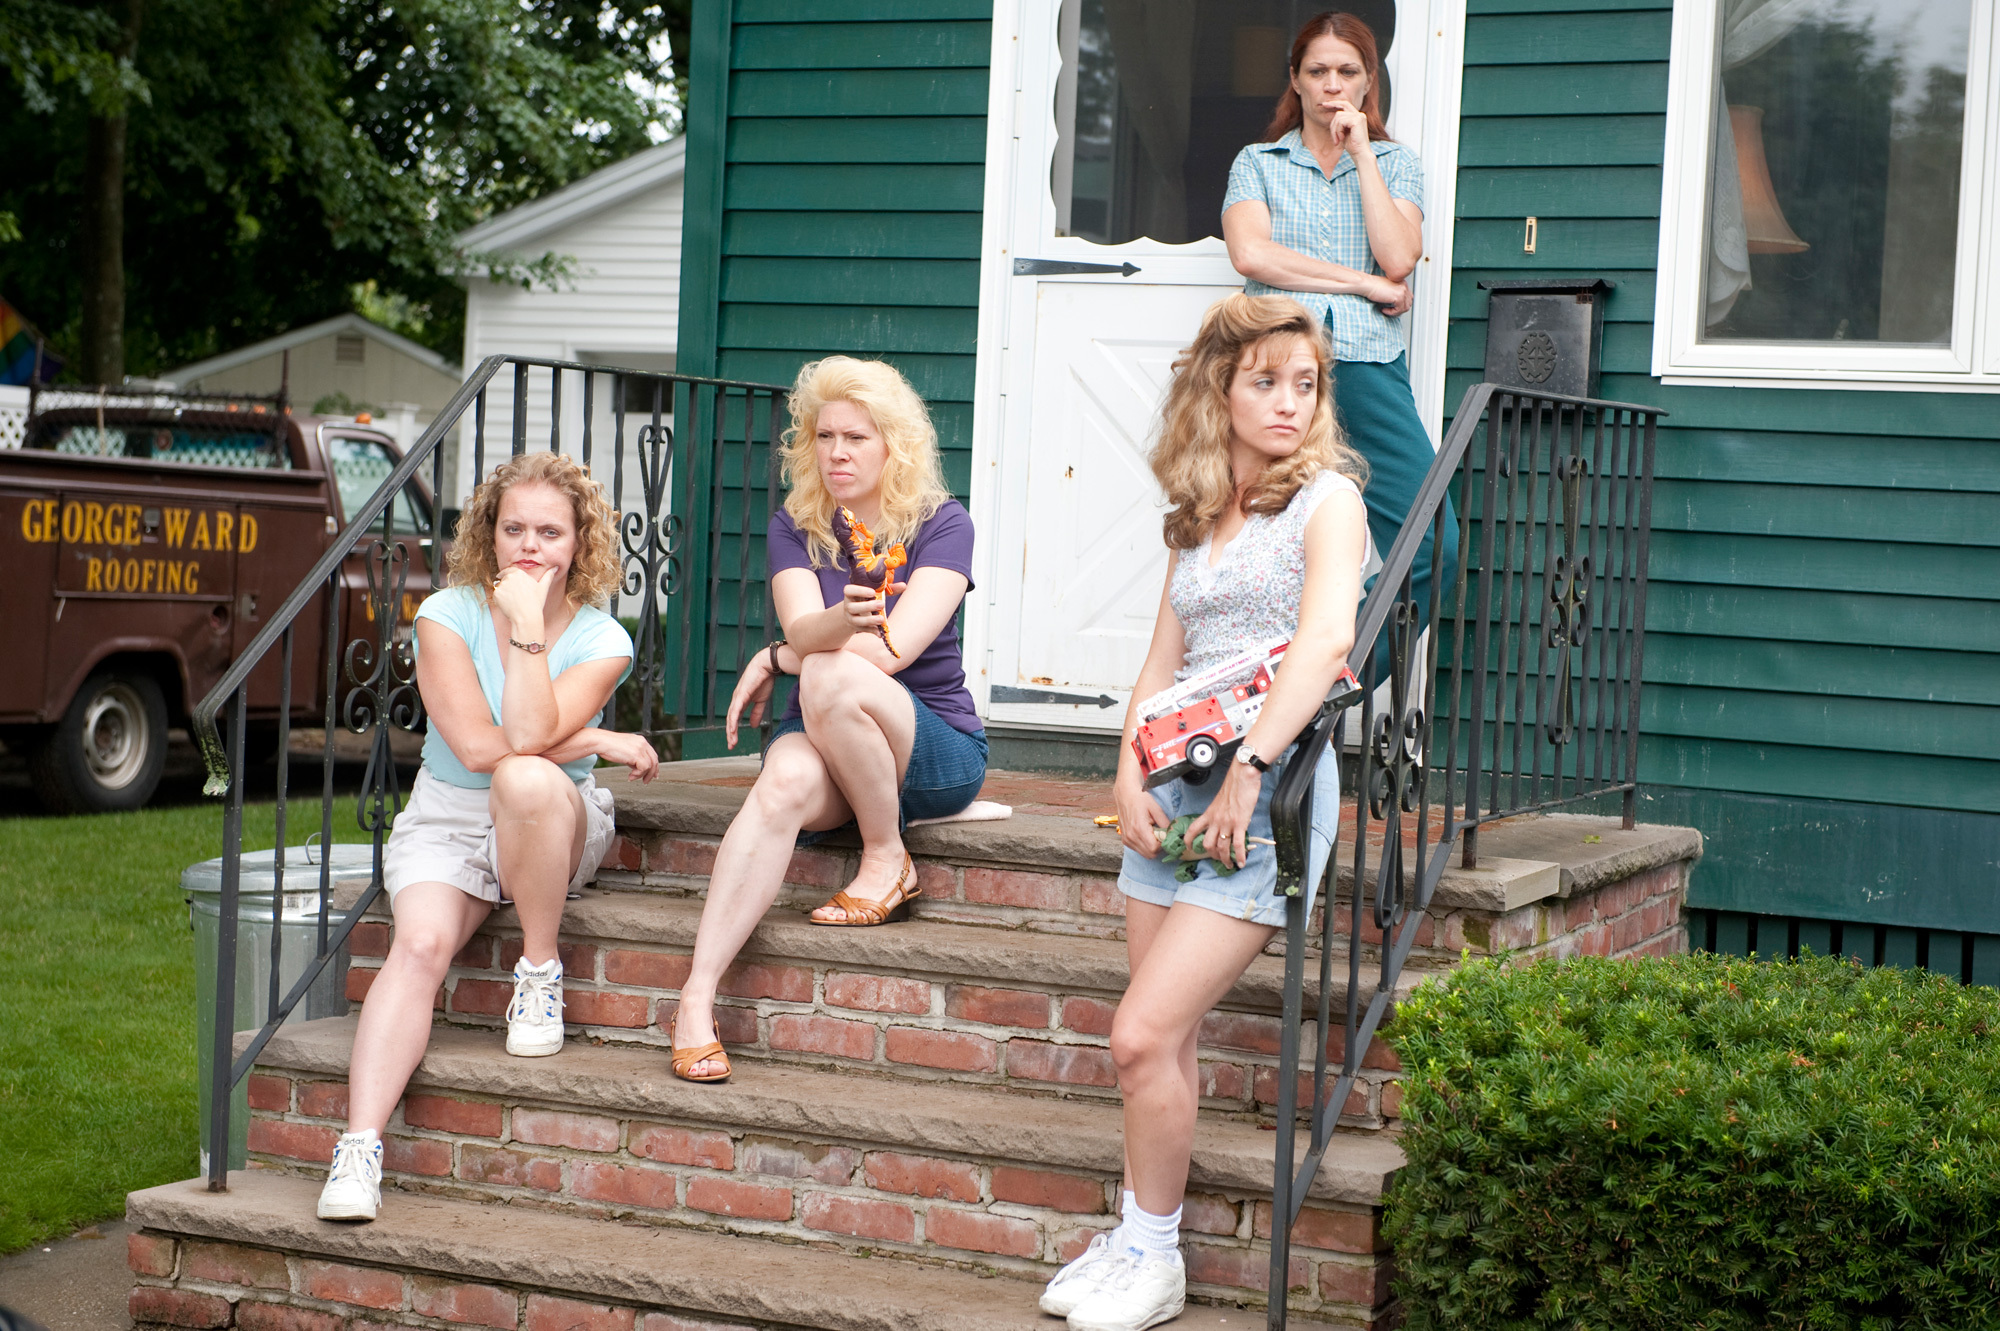 Bianca Hunter, Jenna Lamia, Dendrie Taylor, and Melissa McMeekin in The Fighter (2010)